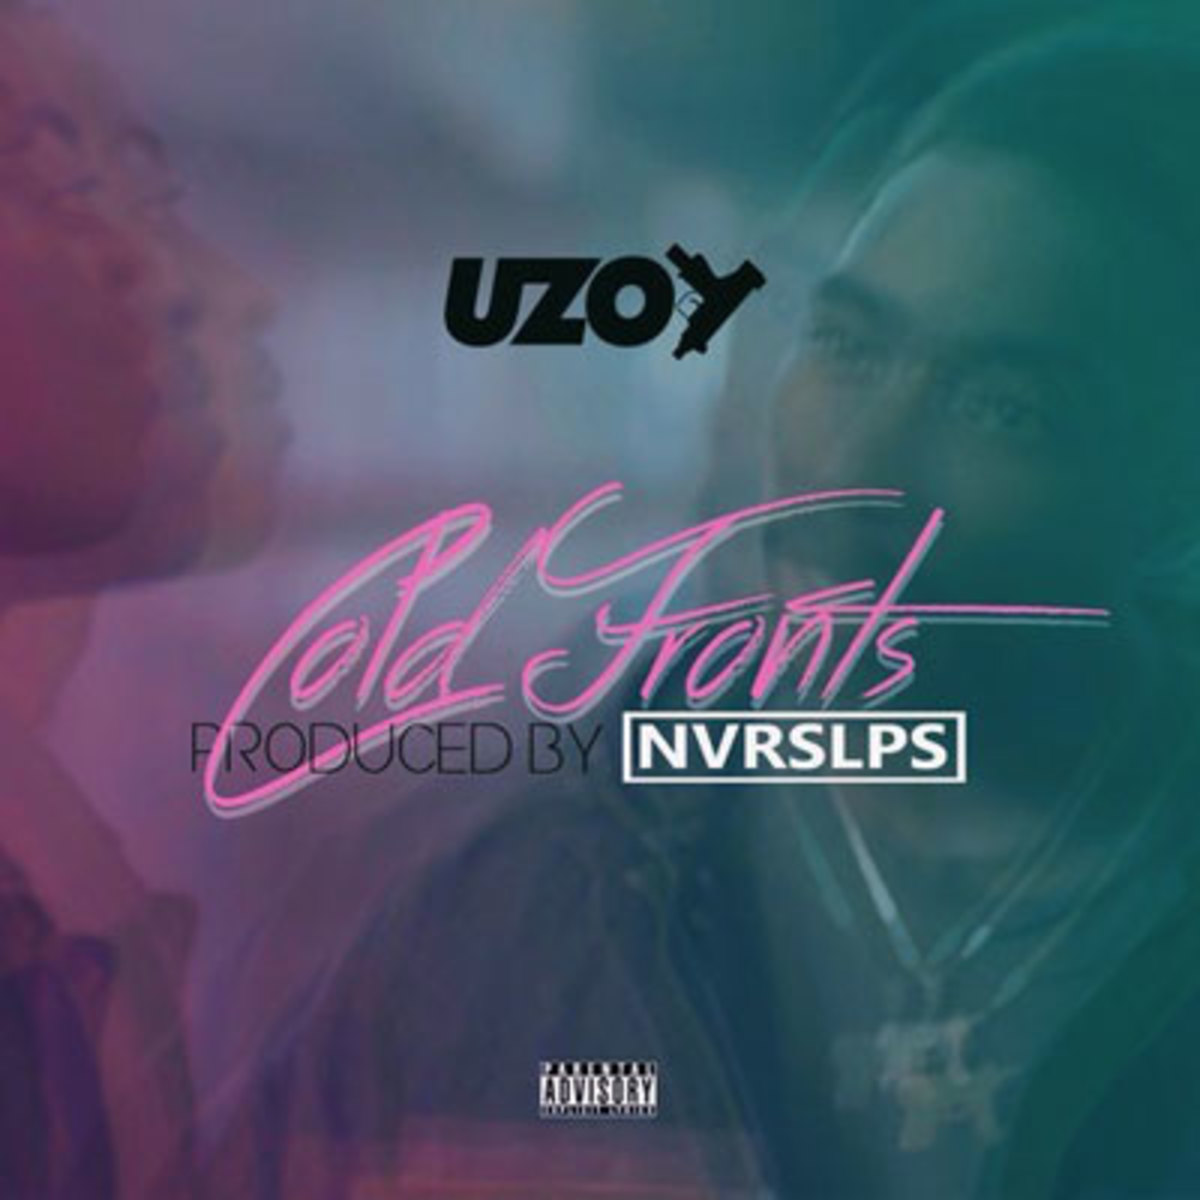 uzoy-coldfronts.jpg